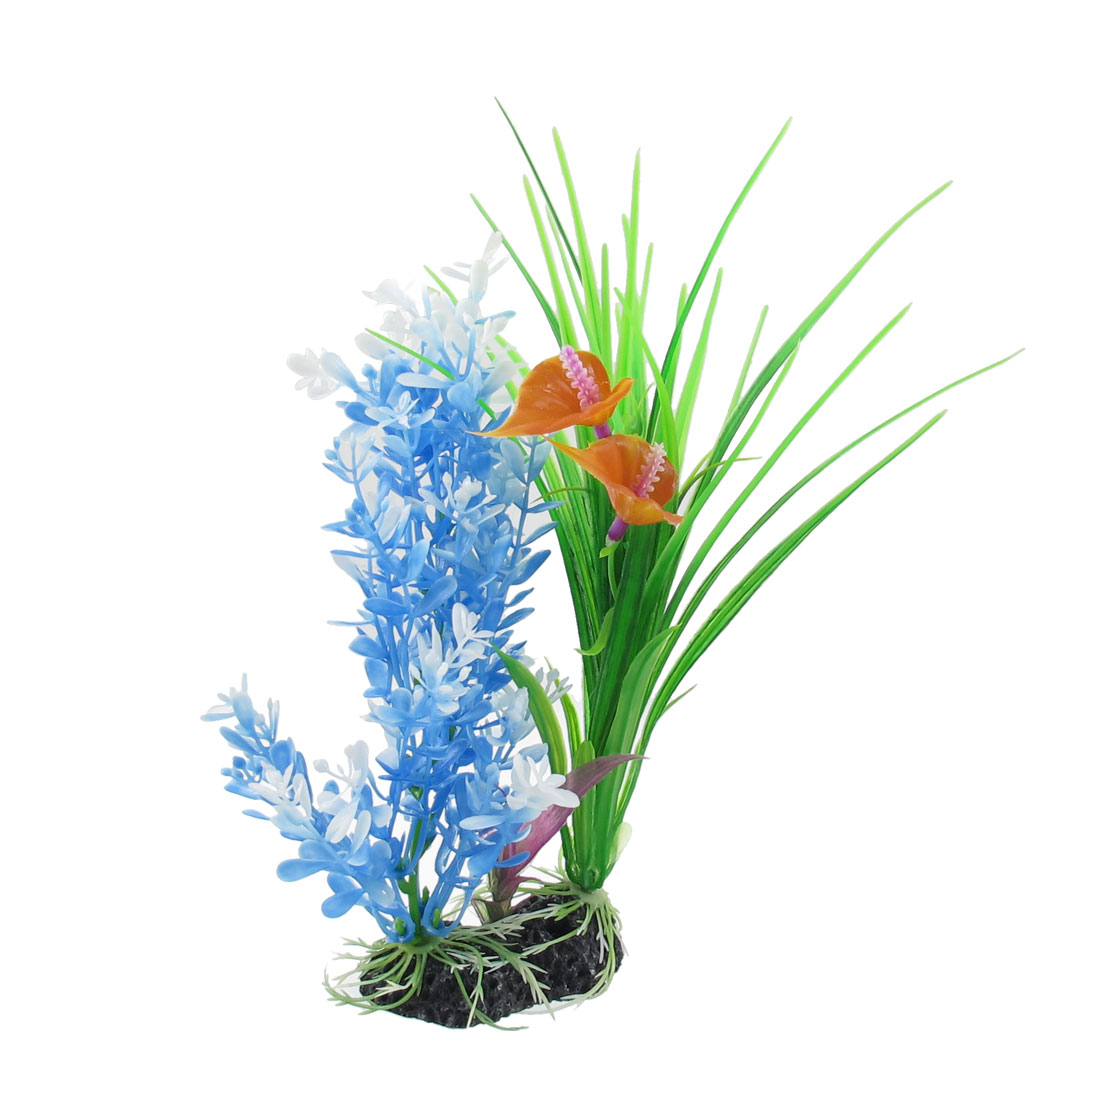 "9.4"" Height Manmade Plastic Flowering Colorful Plant for Aquarium Fish Tank"